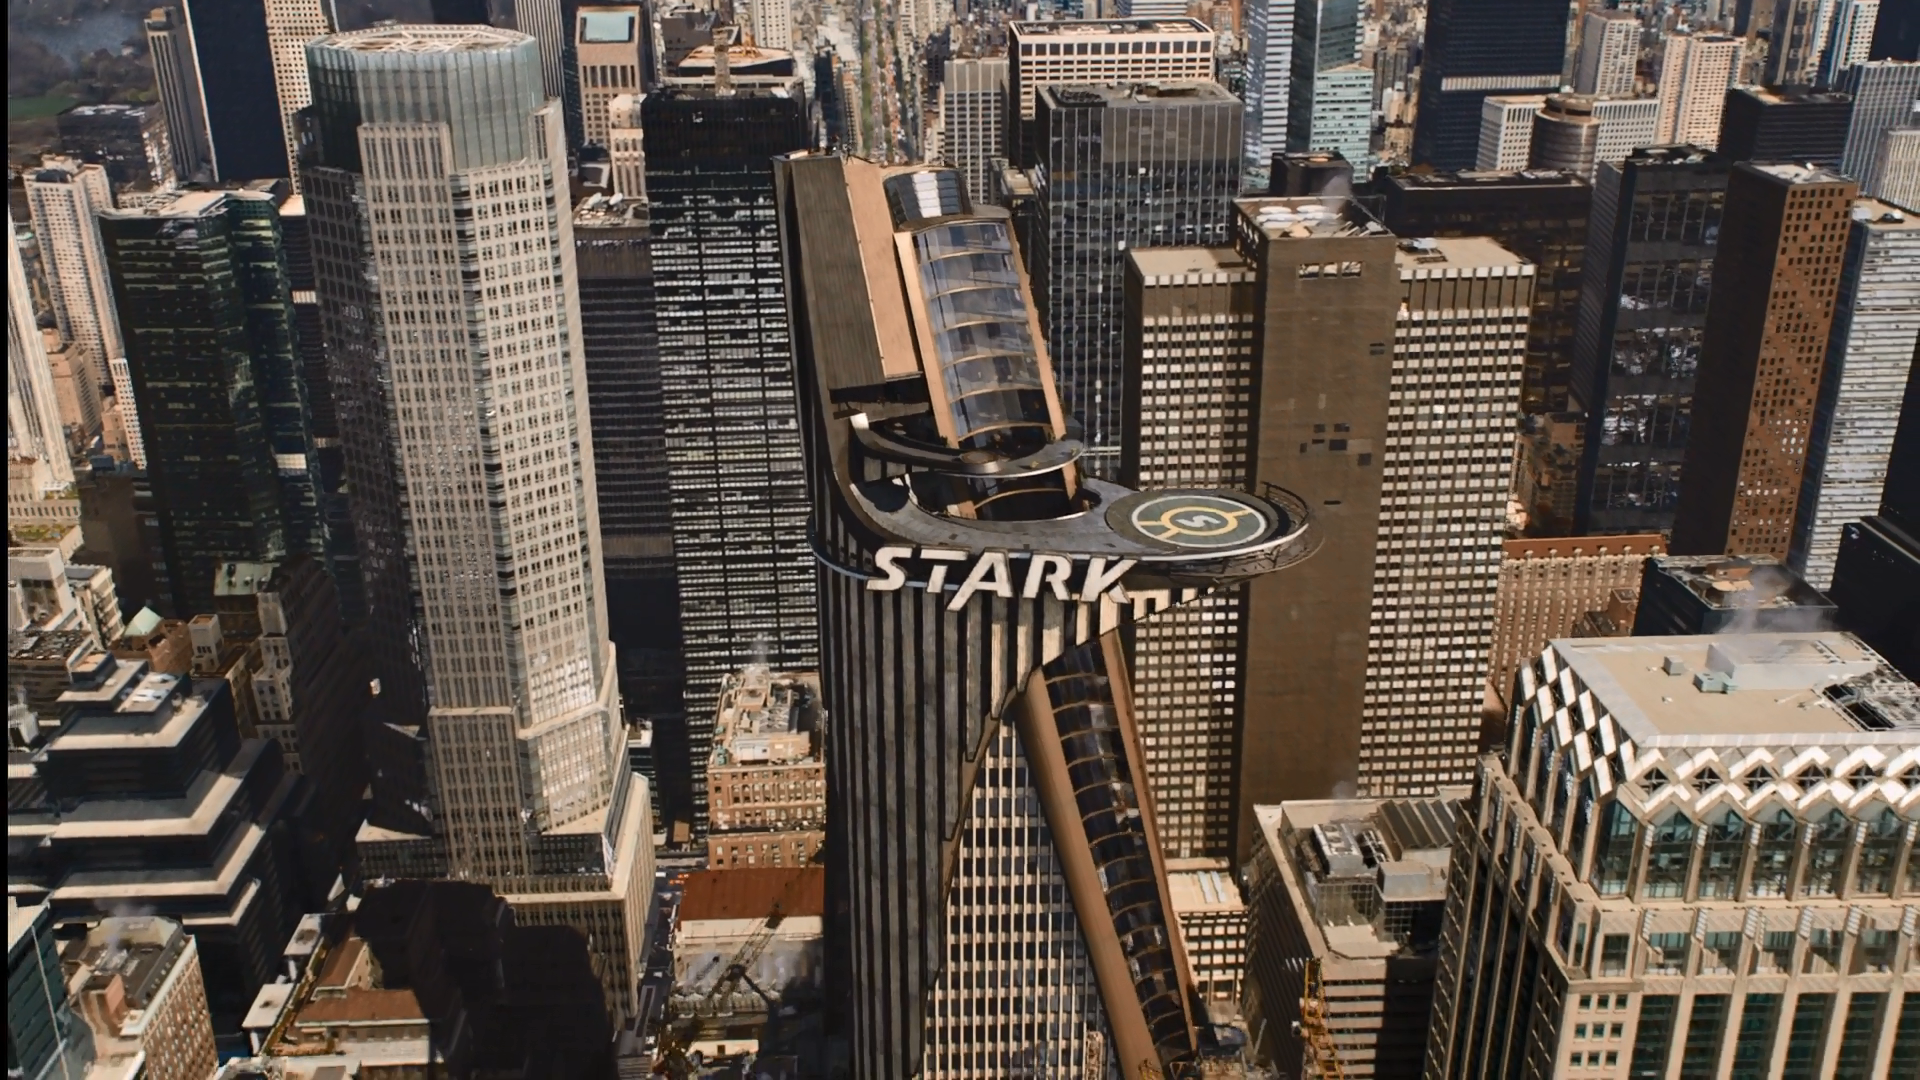 1920x1080 Stark Tower Wallpapers